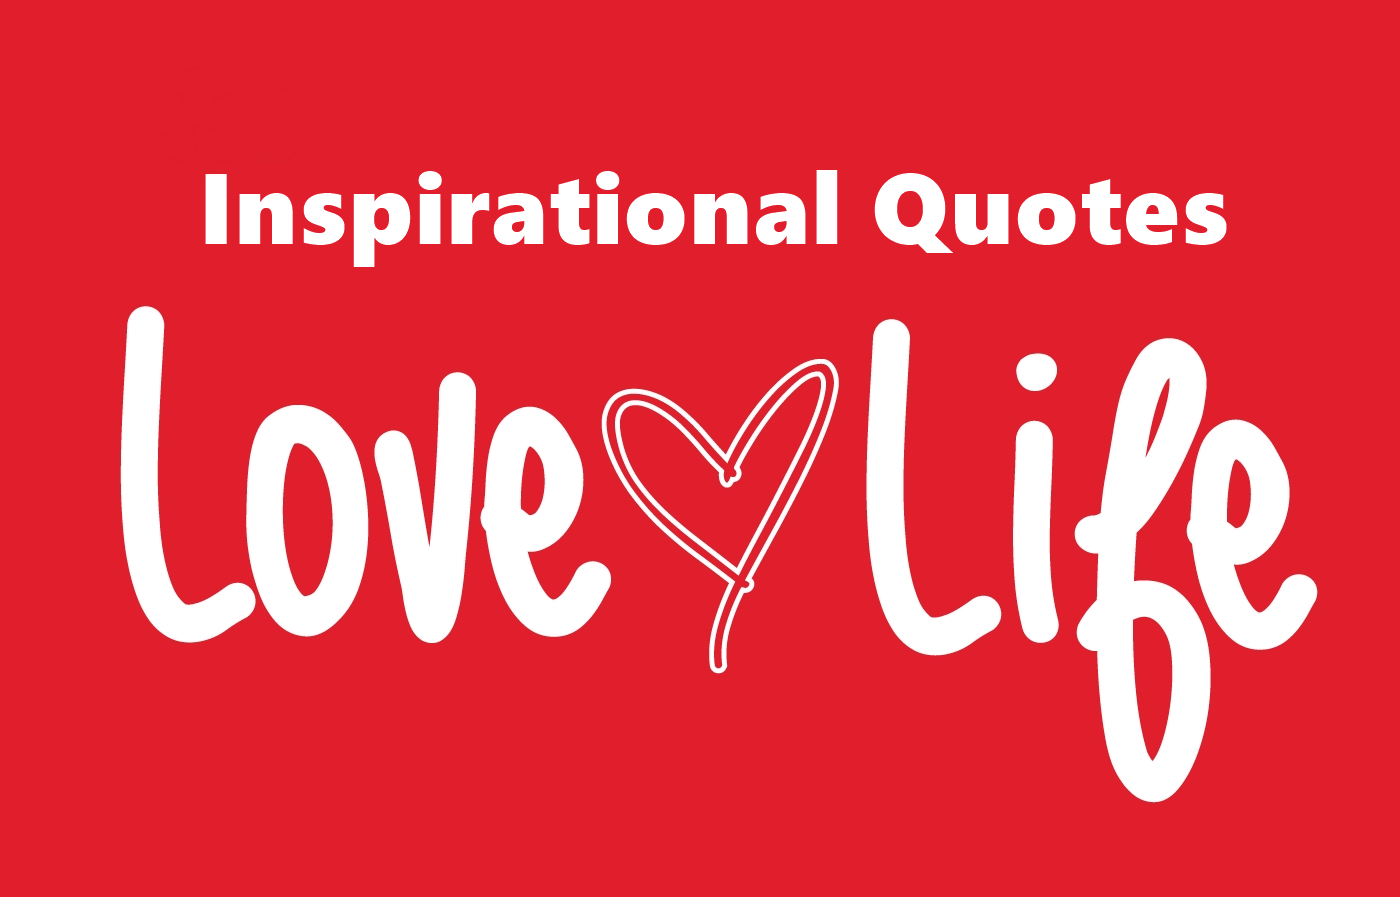 208 Most Inspiring Quotes on Life Love Happiness - BoomSumo ...